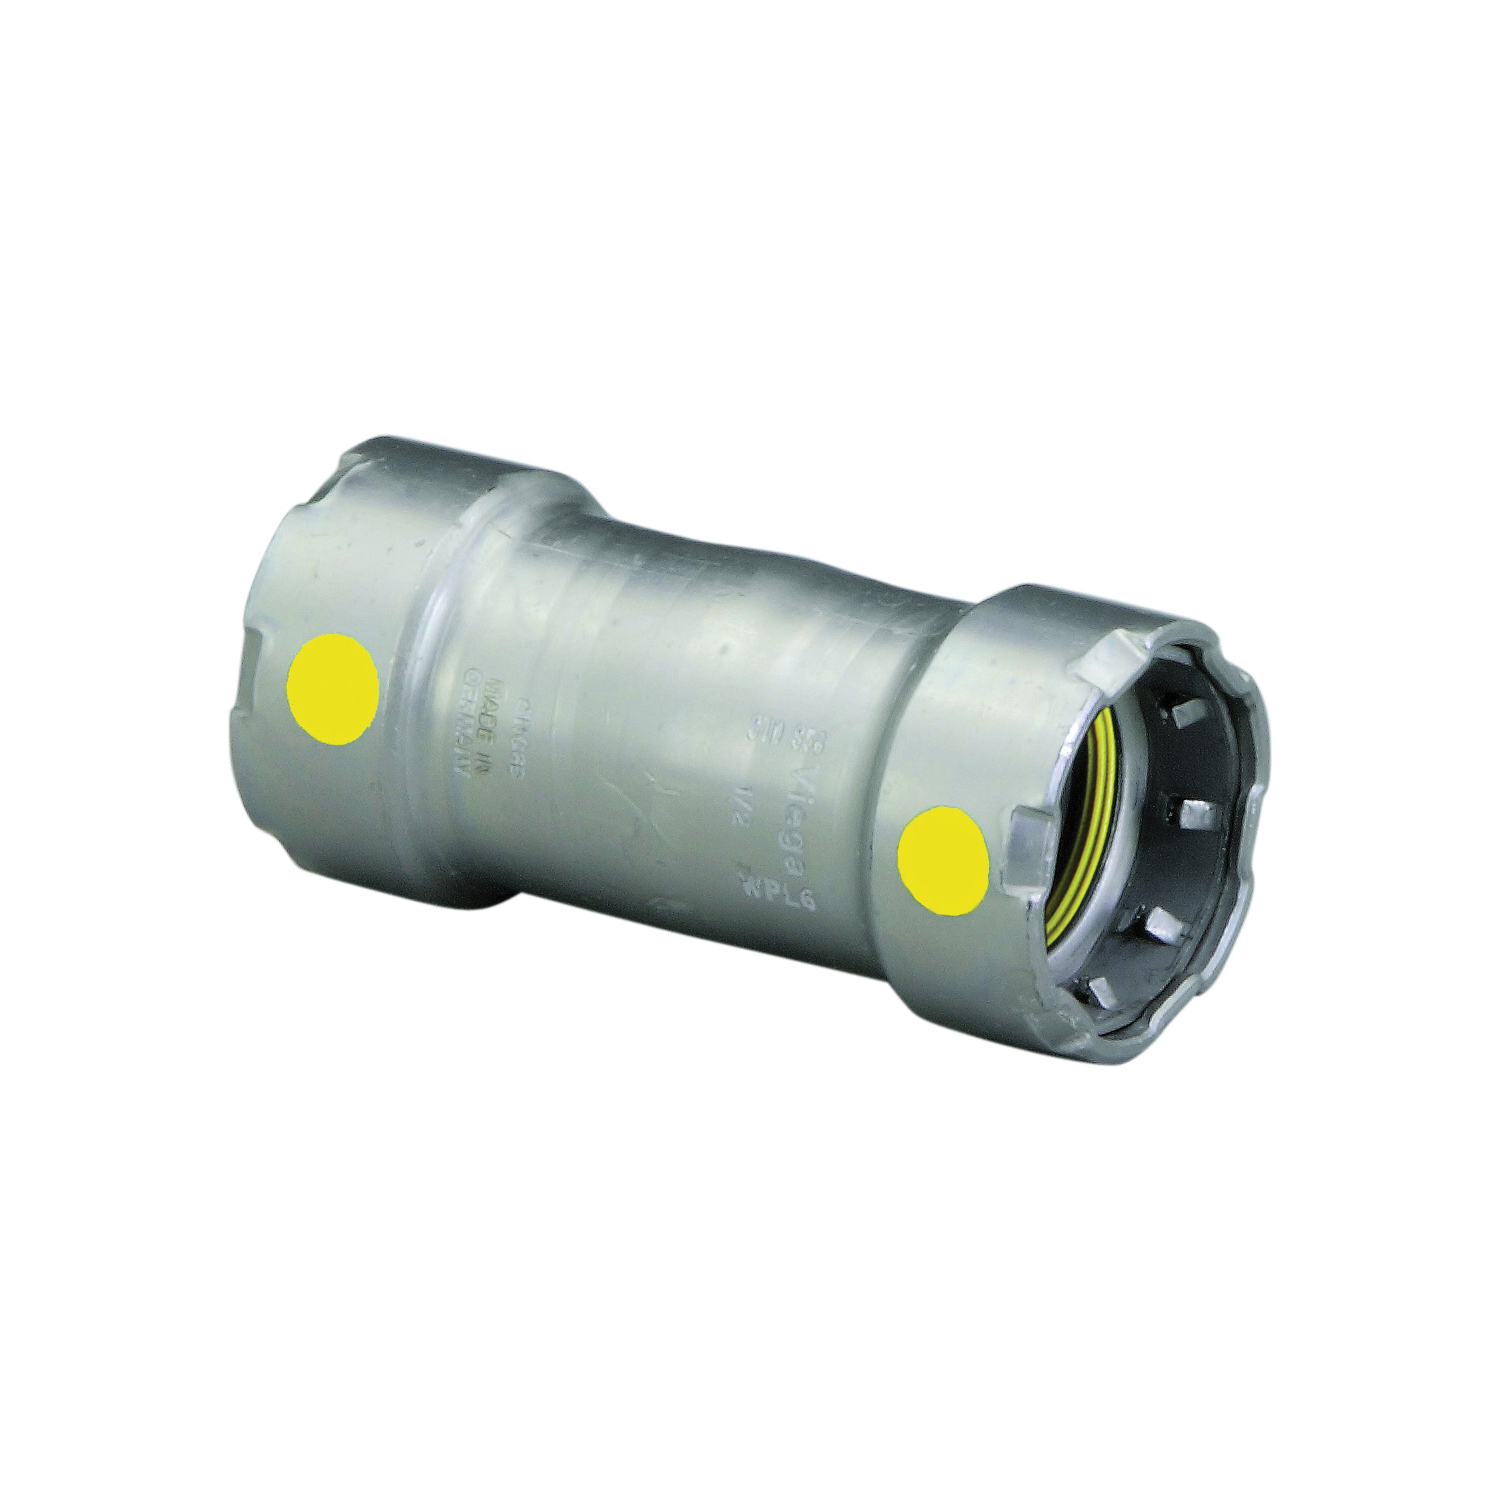 MegaPress®G 25031 Pipe Coupling Without Stop, 1/2 in, Press